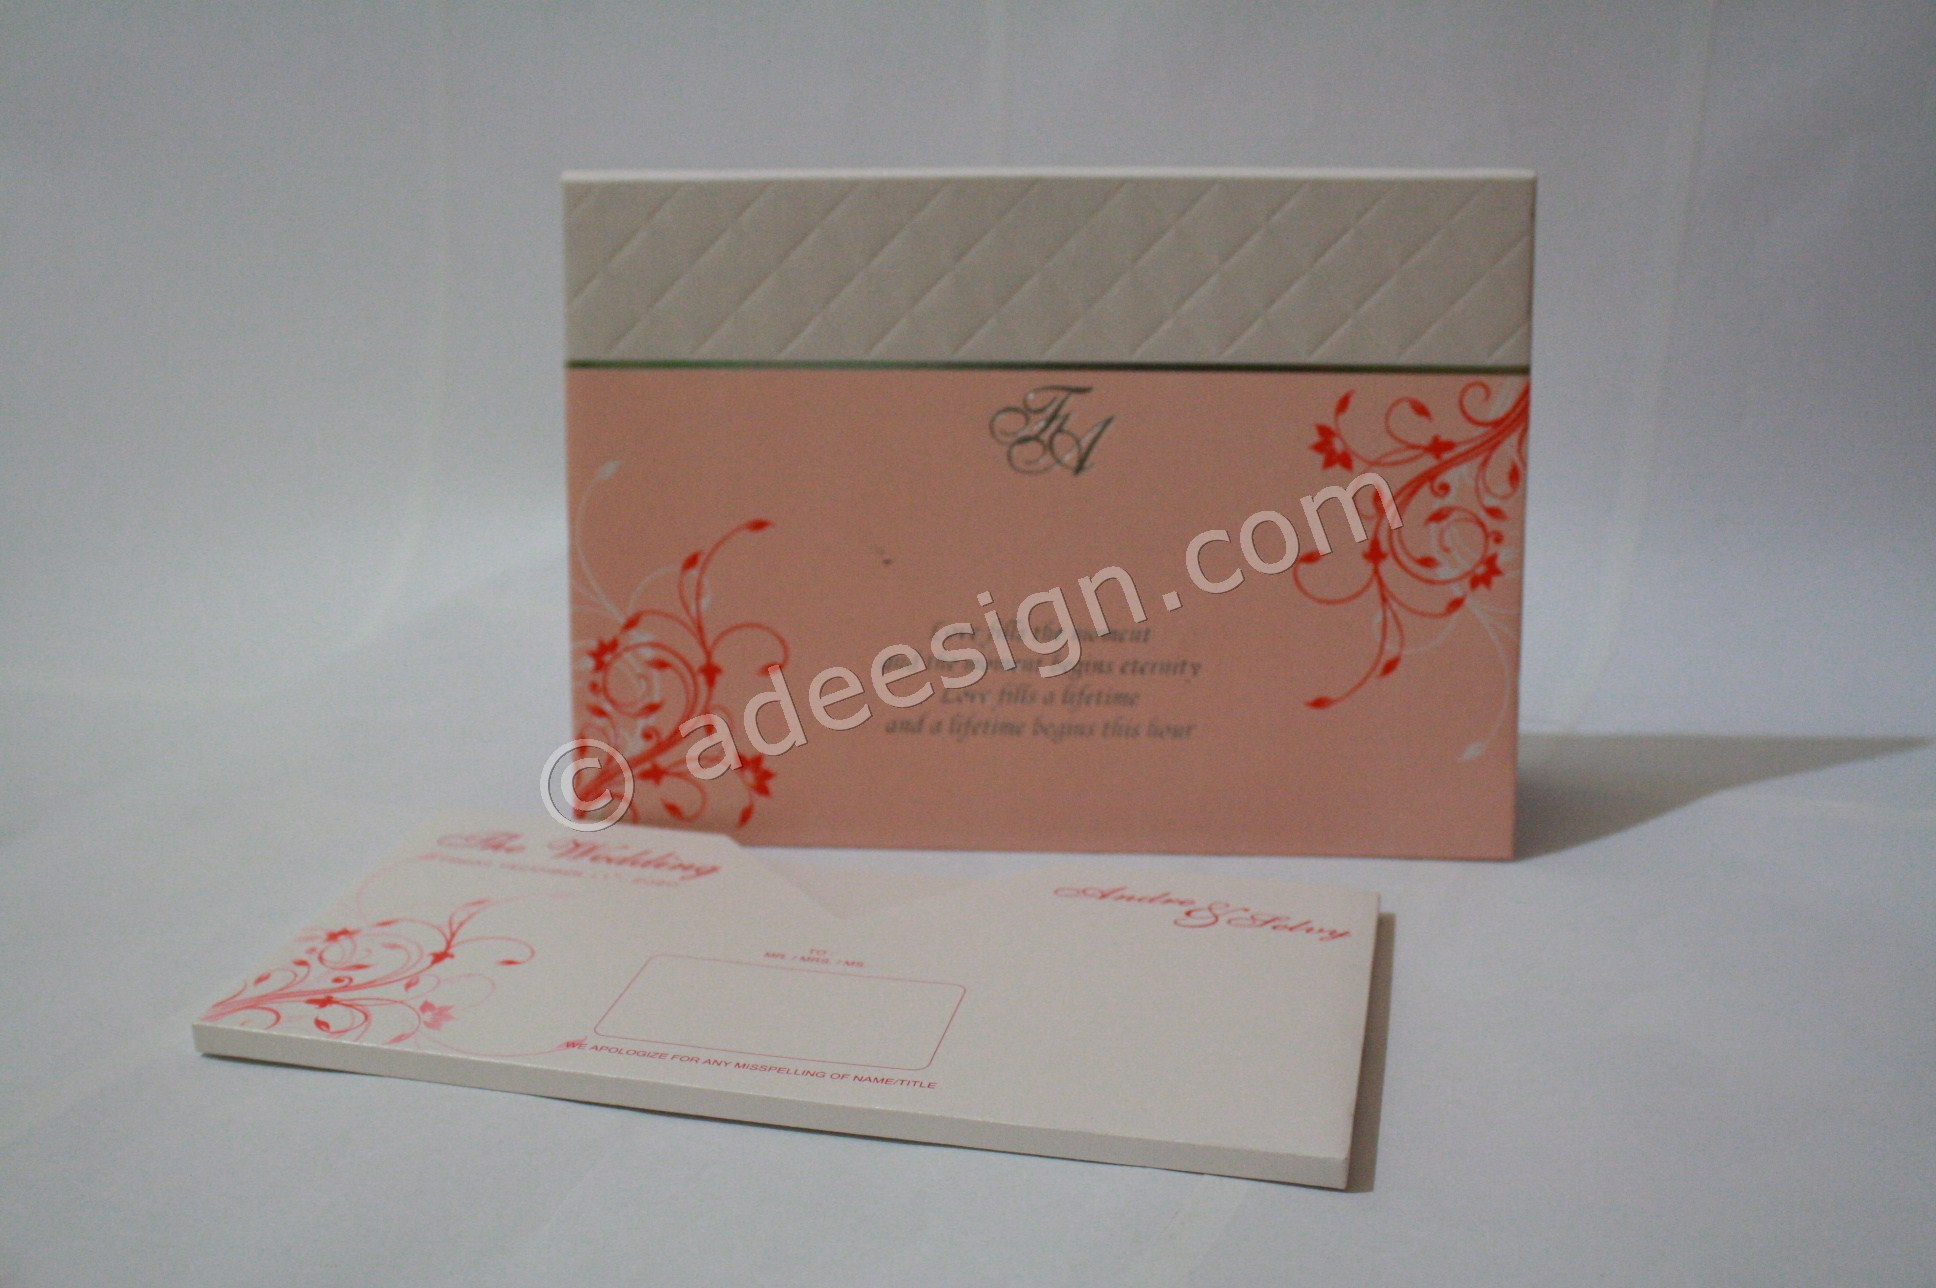 Undangan Pernikahan Hardcover ED631 - Percetakan Wedding Invitations Simple dan Elegan di Sawunggaling